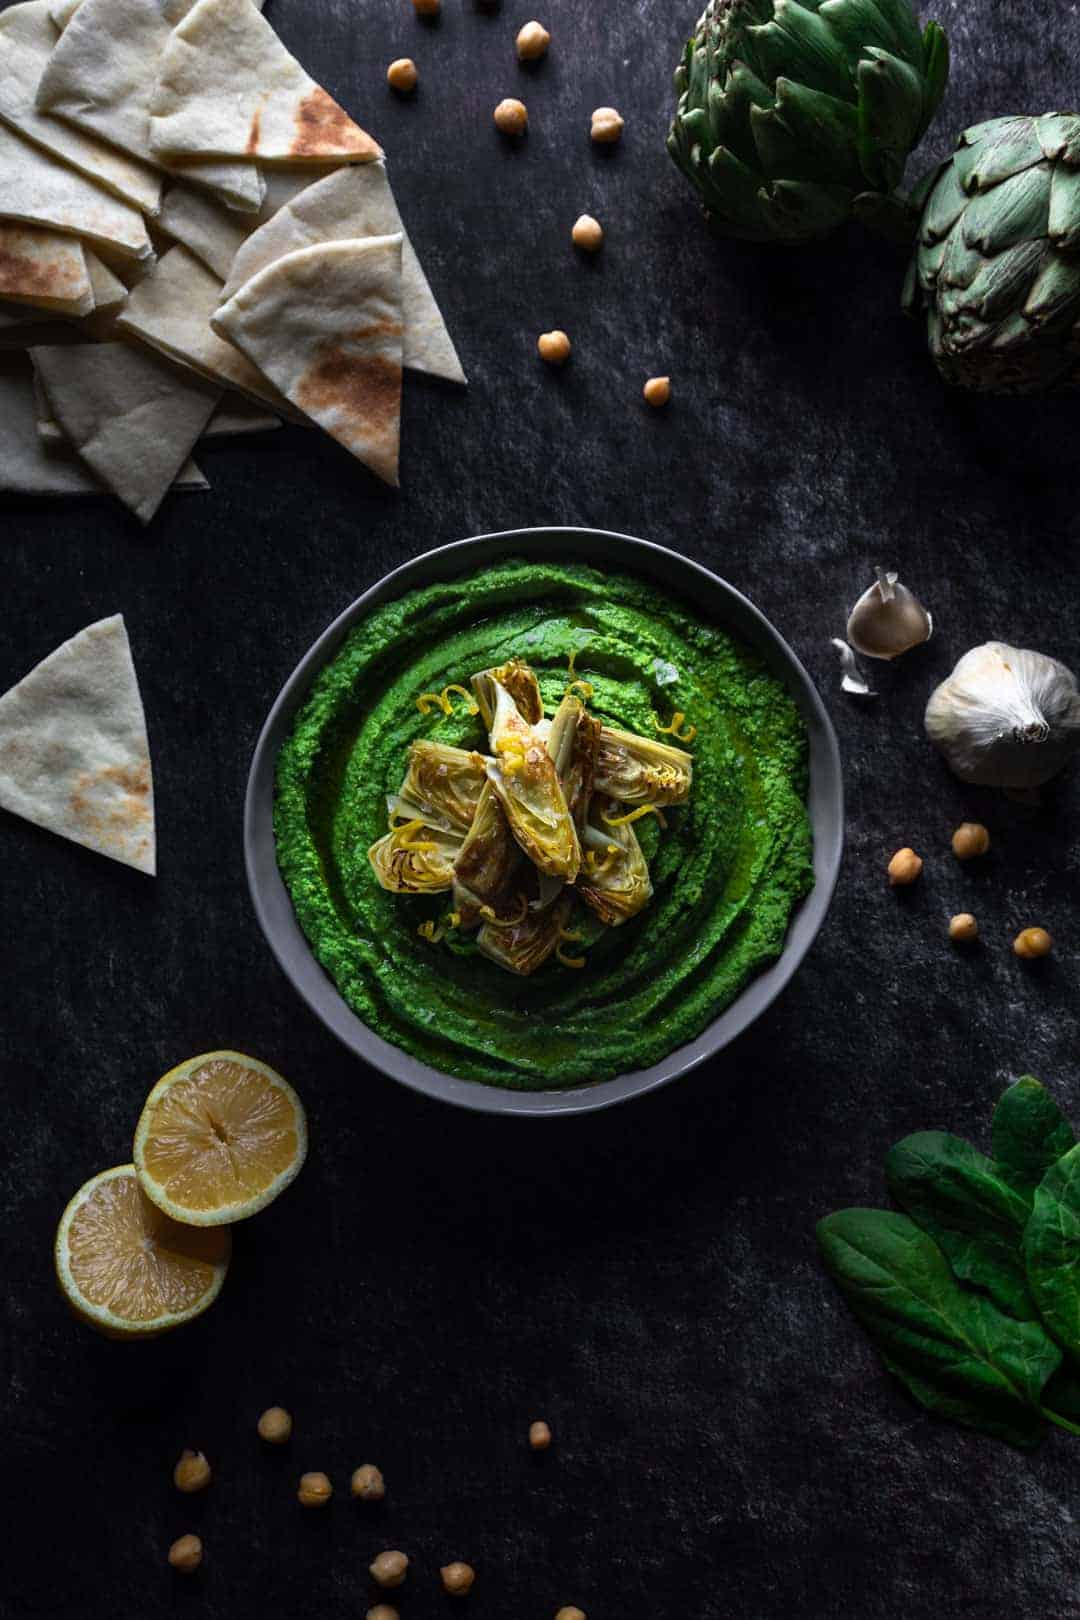 A big bowl of bright green spinach hummus topped with artichokes and surrounded by chickpeas, spinach, artichokes, a halved lemon and several triangles of pita bread